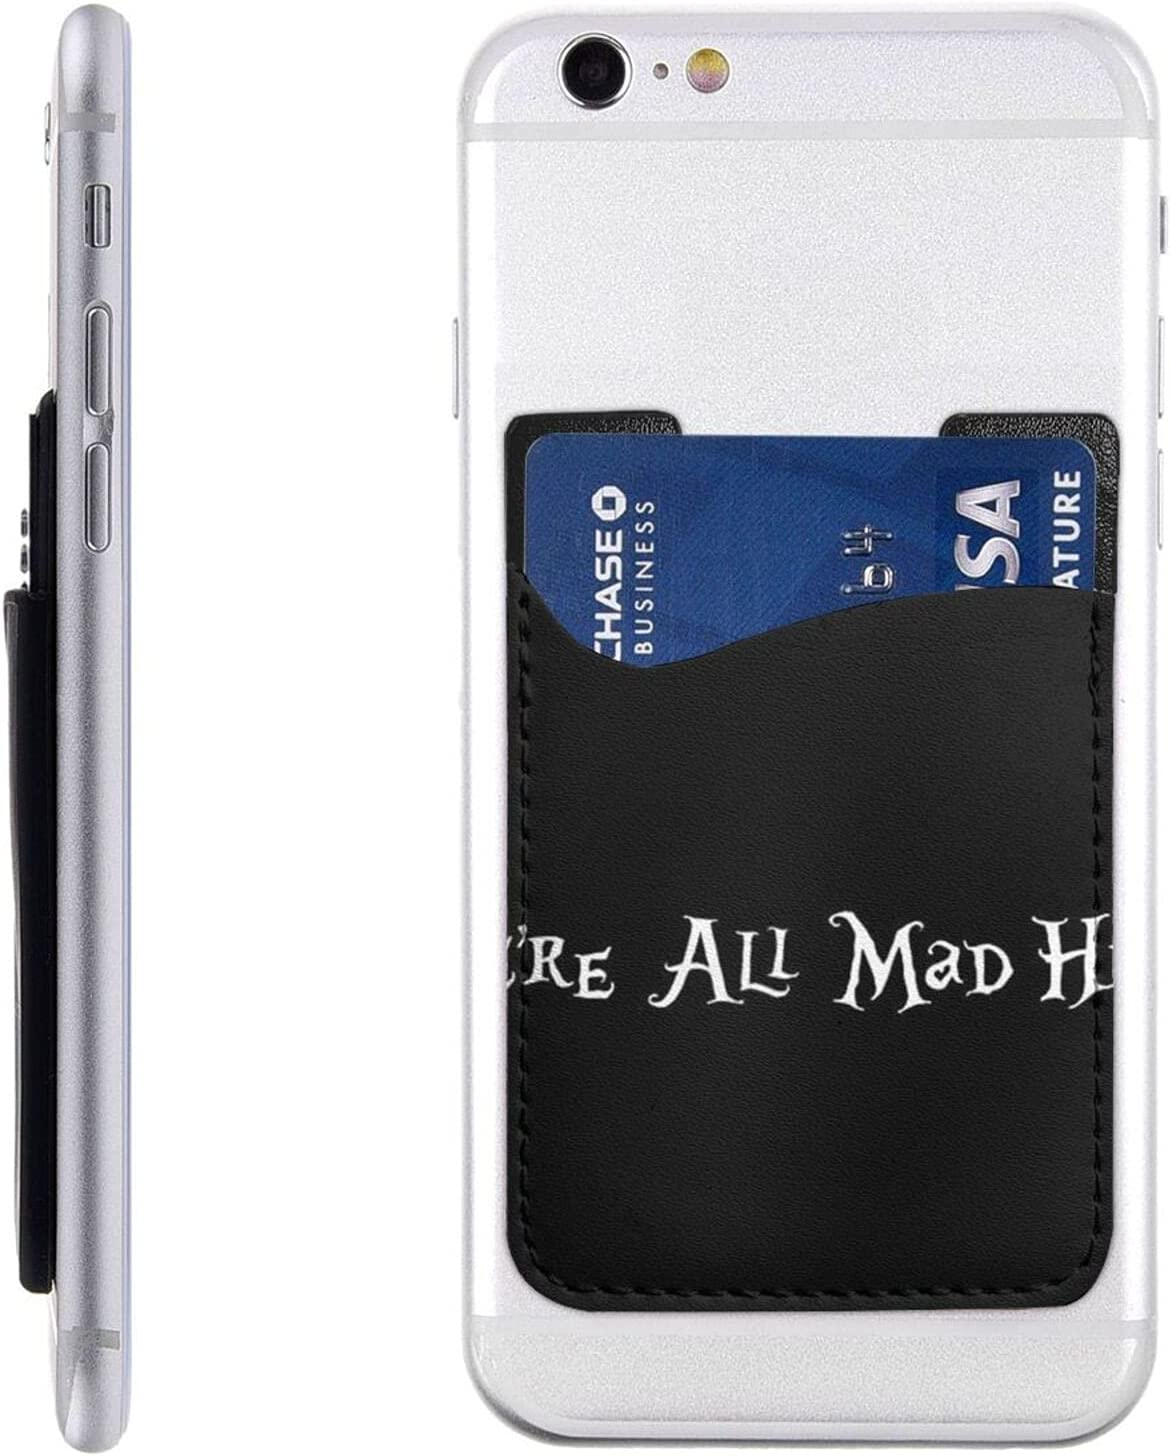 We're All 2021 Mad Here Phone Overseas parallel import regular item Card Cell On Wa Holder Stick